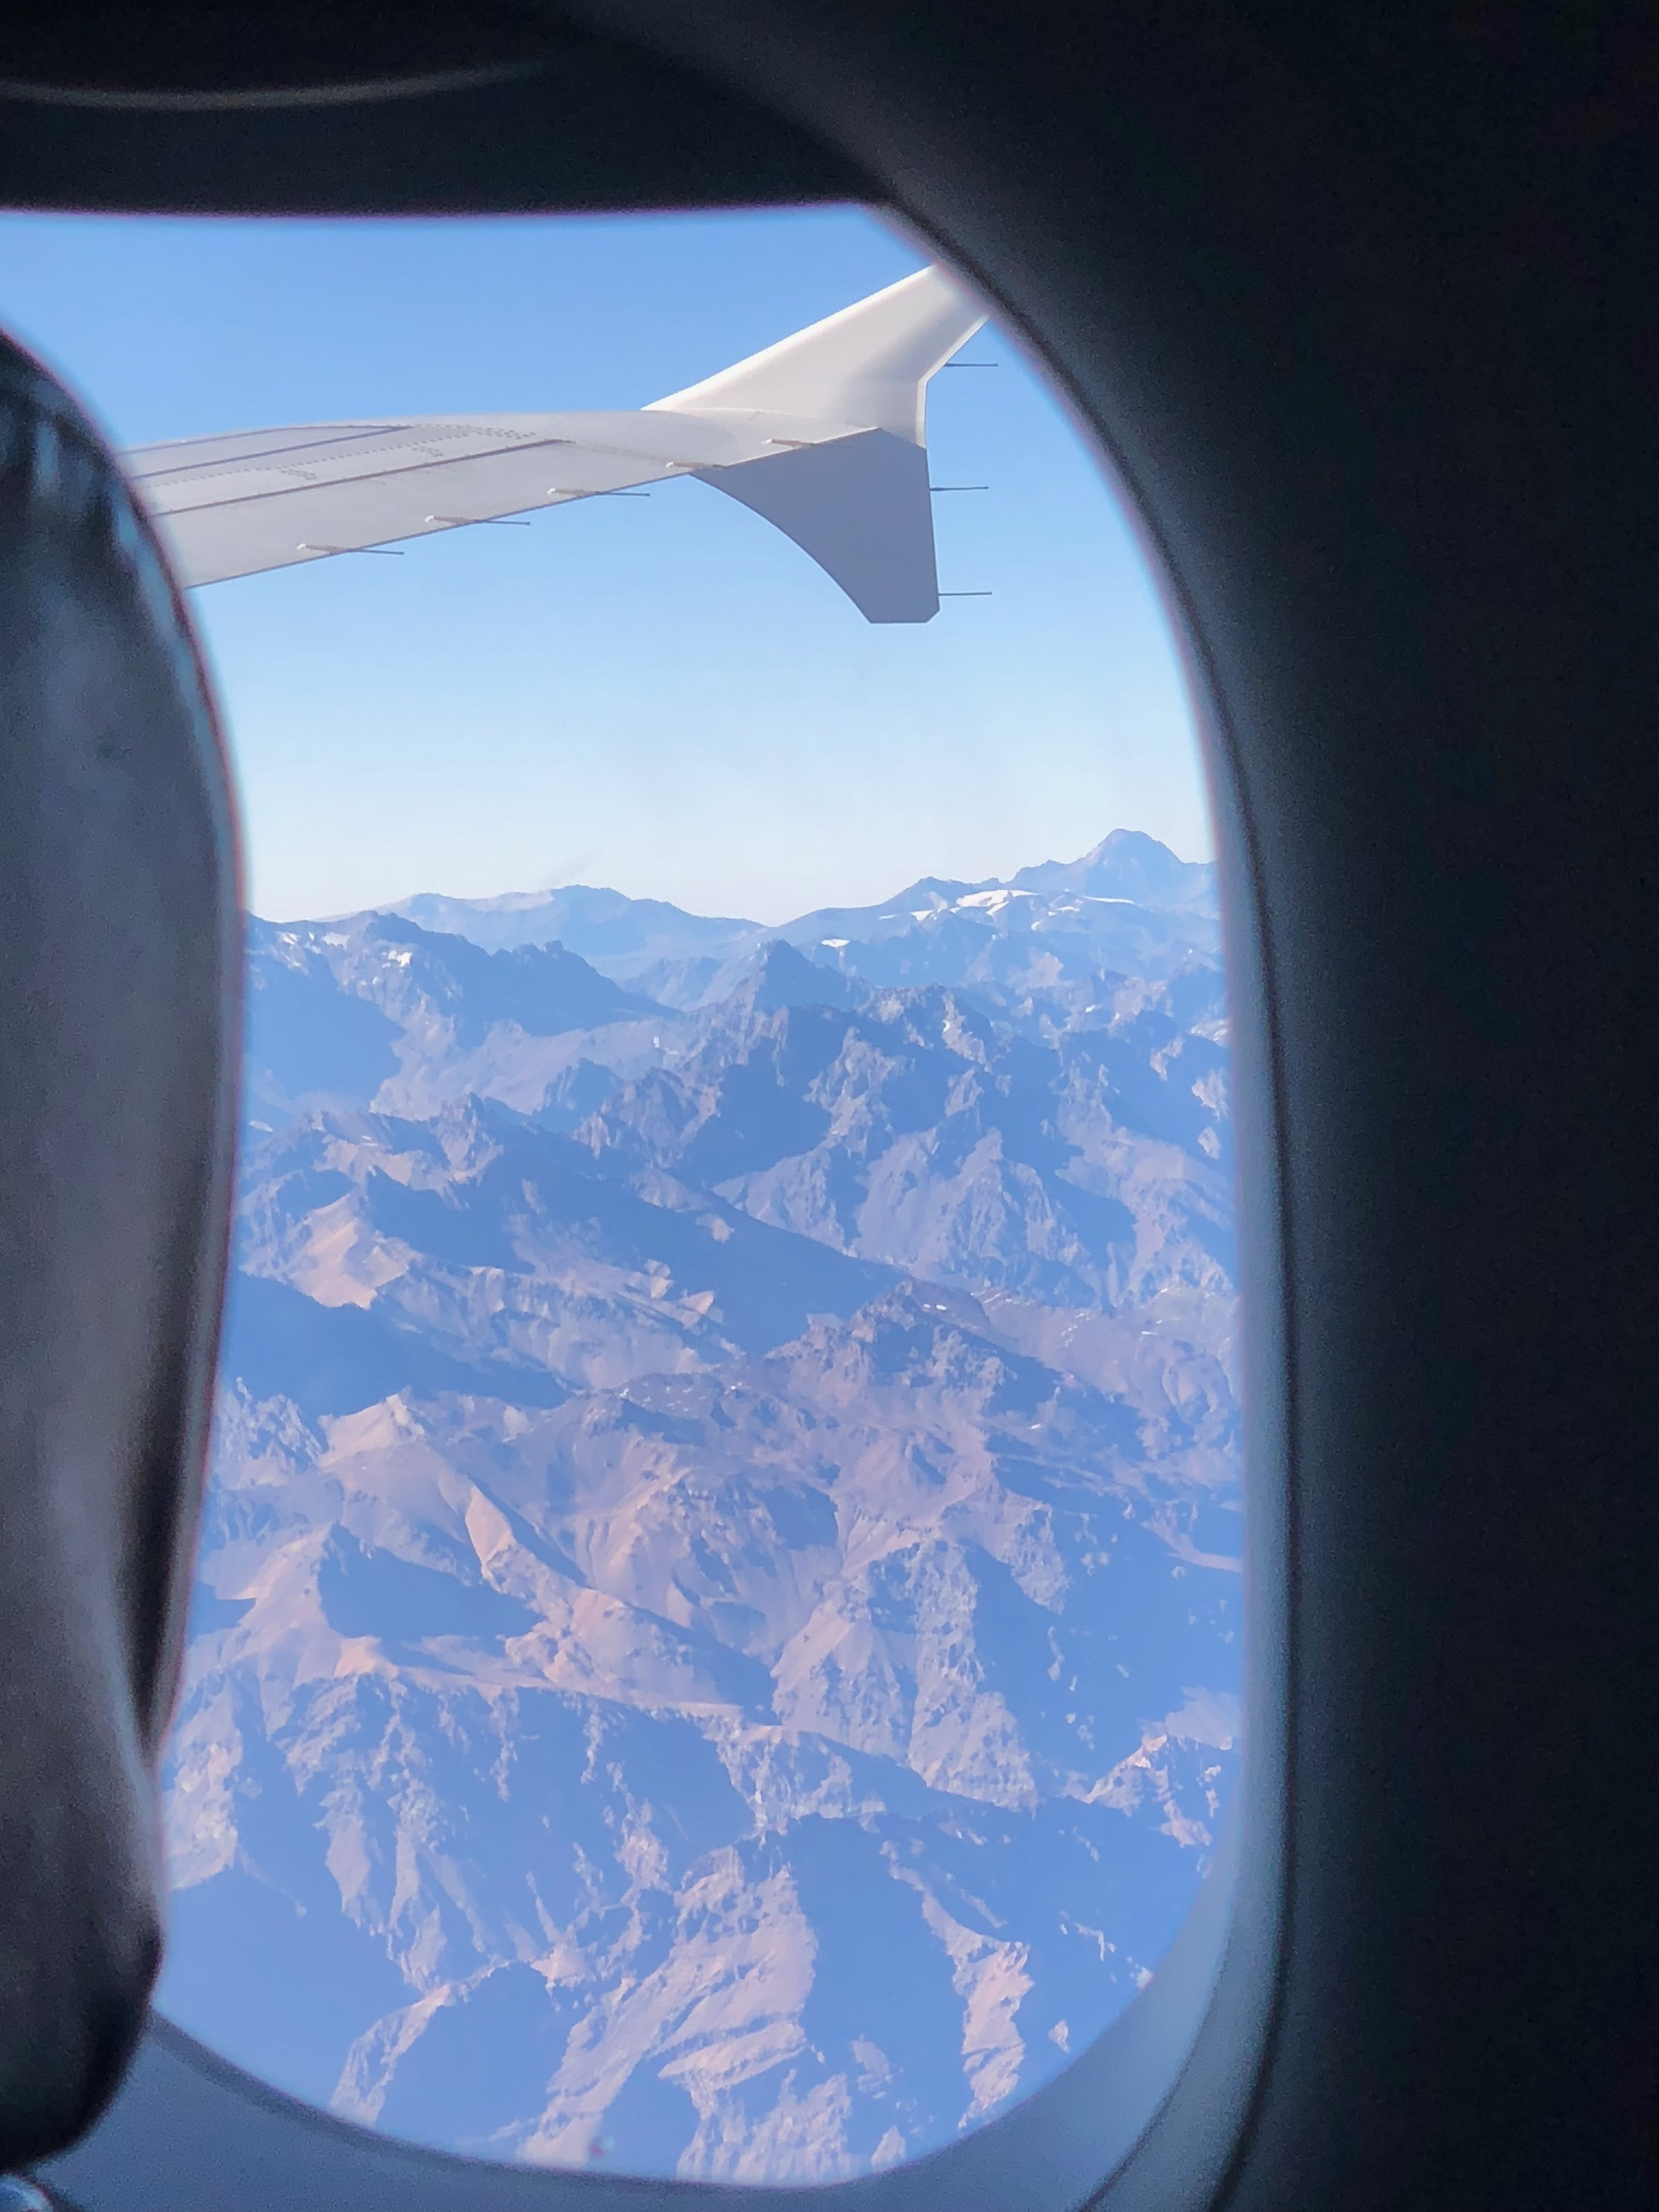 The view from the airplane window as we fly low over the jagged Andes mountains